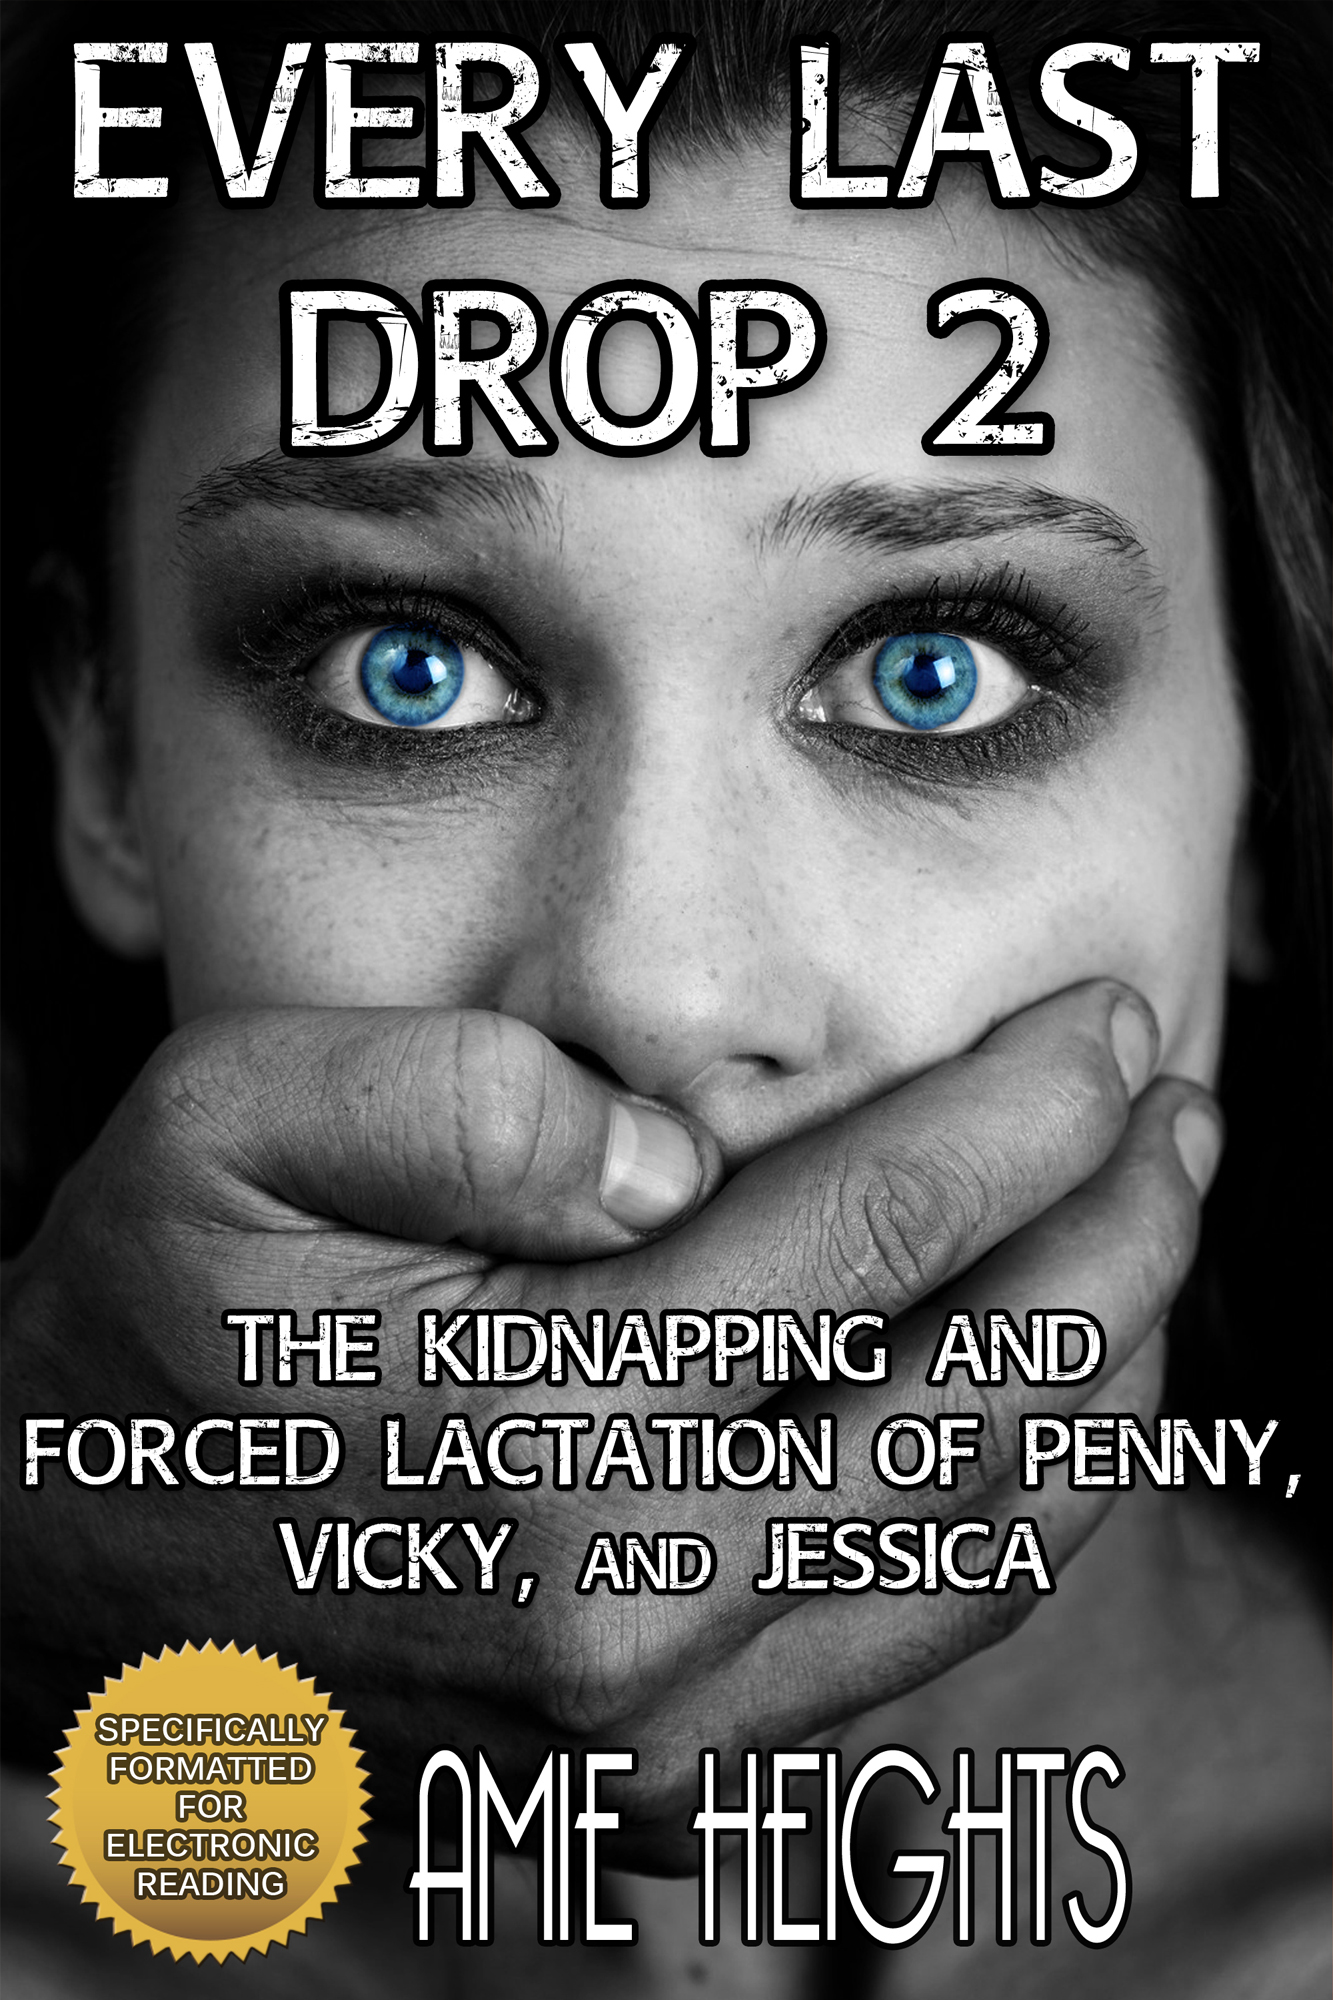 Every Last Drop 2 The Kidnapping and Forced Lactation of Penny, Vicky, and Jessica by the Host